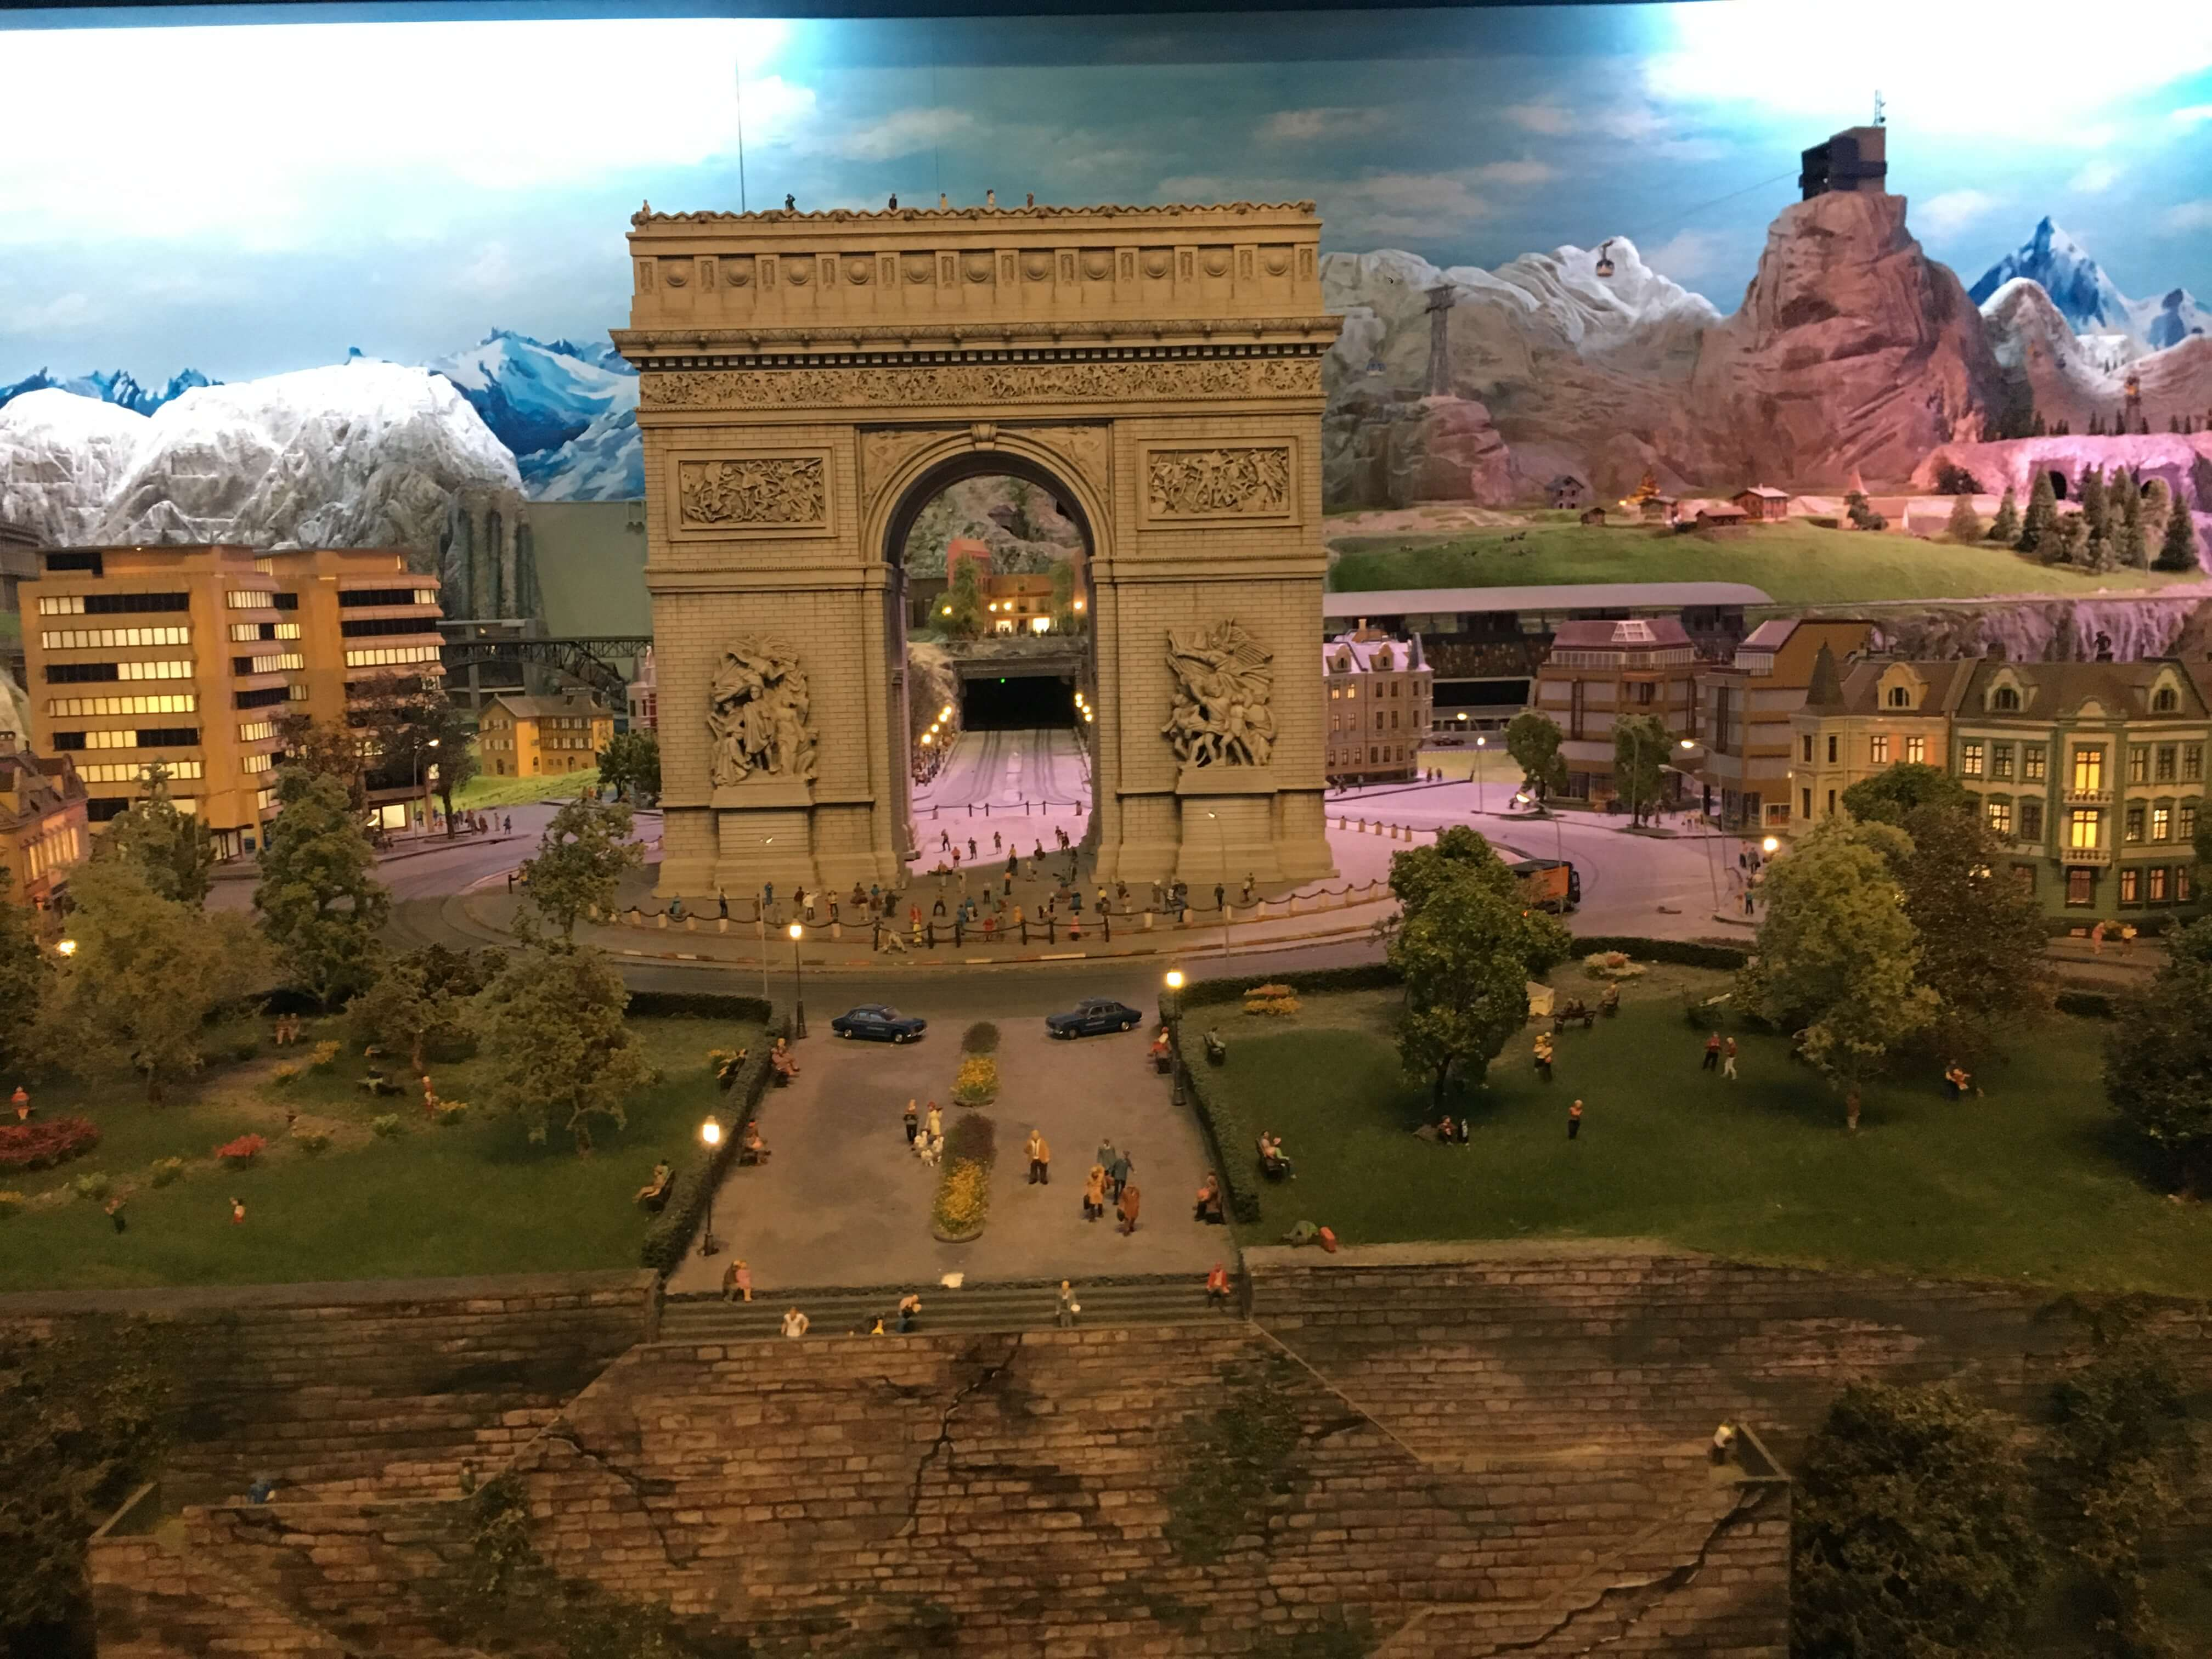 miniature scale models at gulliver's gate times square france